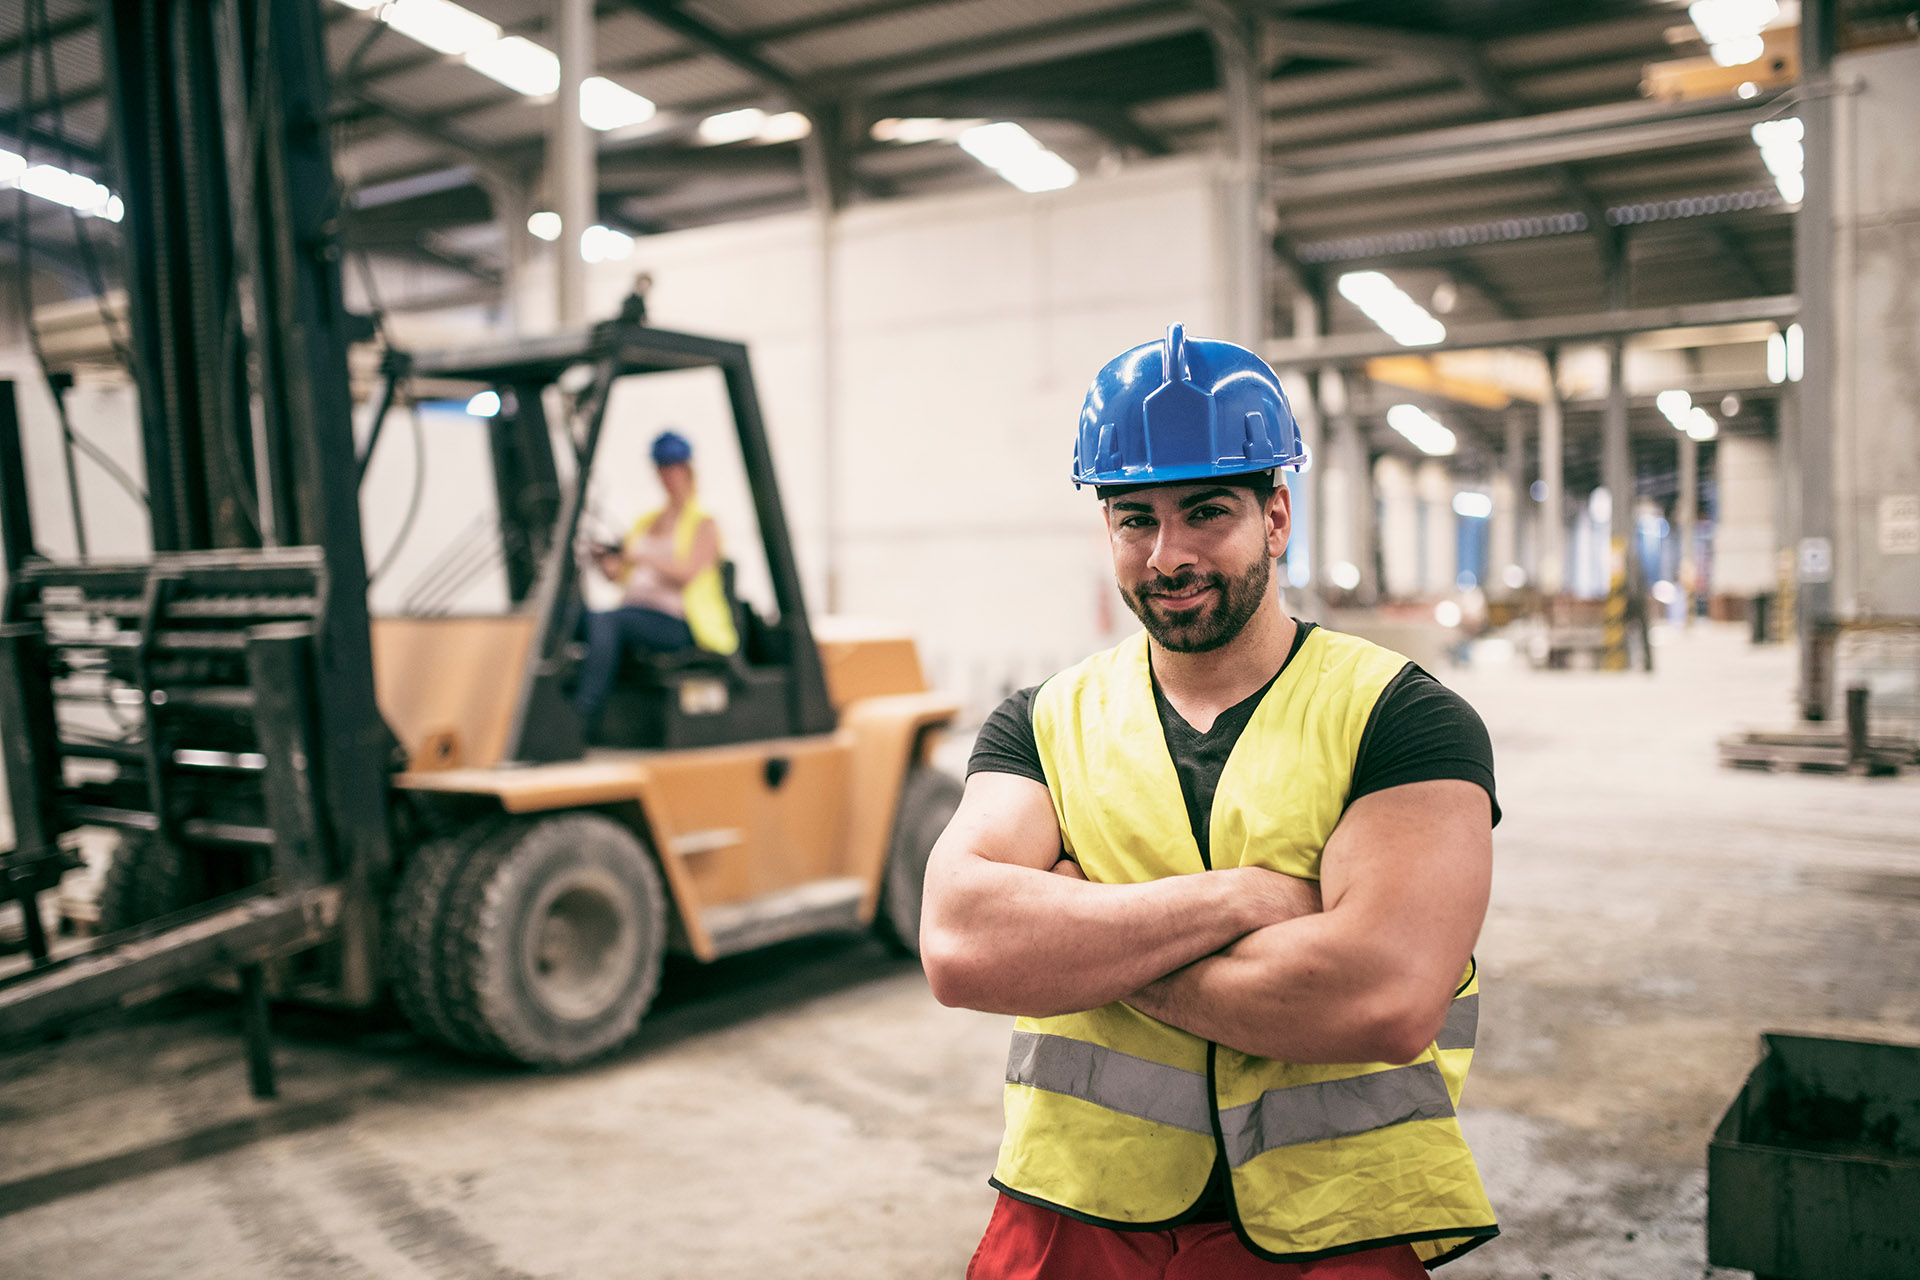 Trades worker standing with arms crossed, smiling.